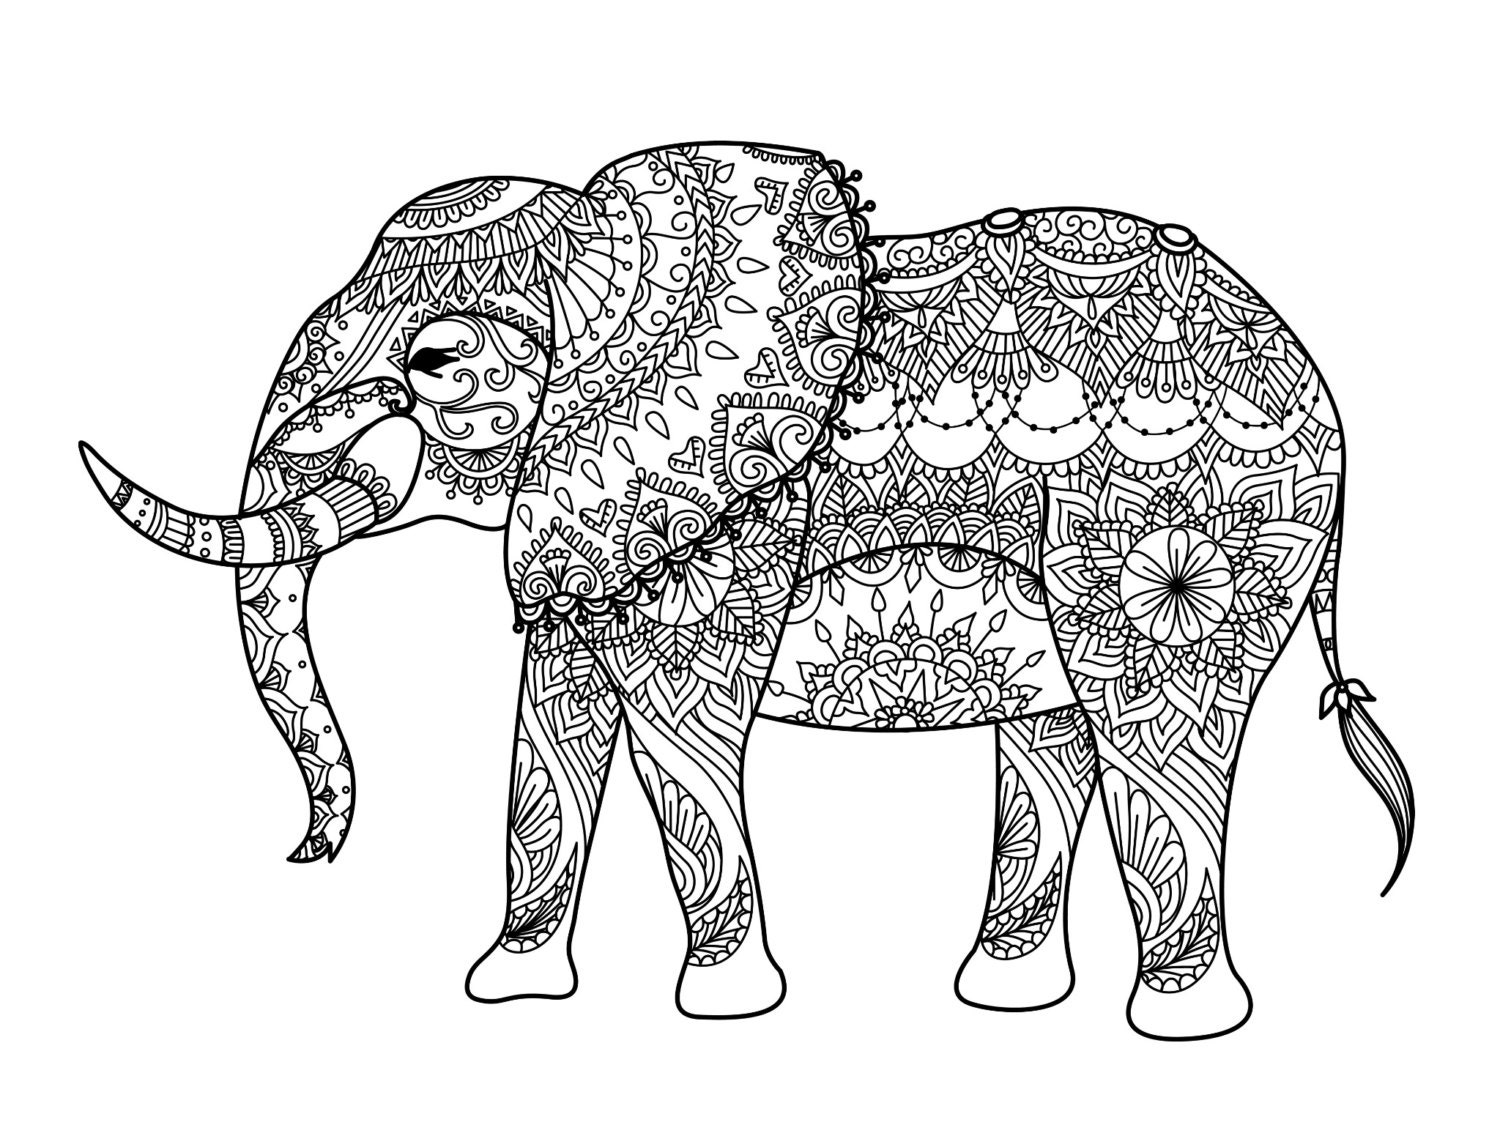 Free zentangle elephant coloring pages ~ Elephant Zentangle digital colouring sheet